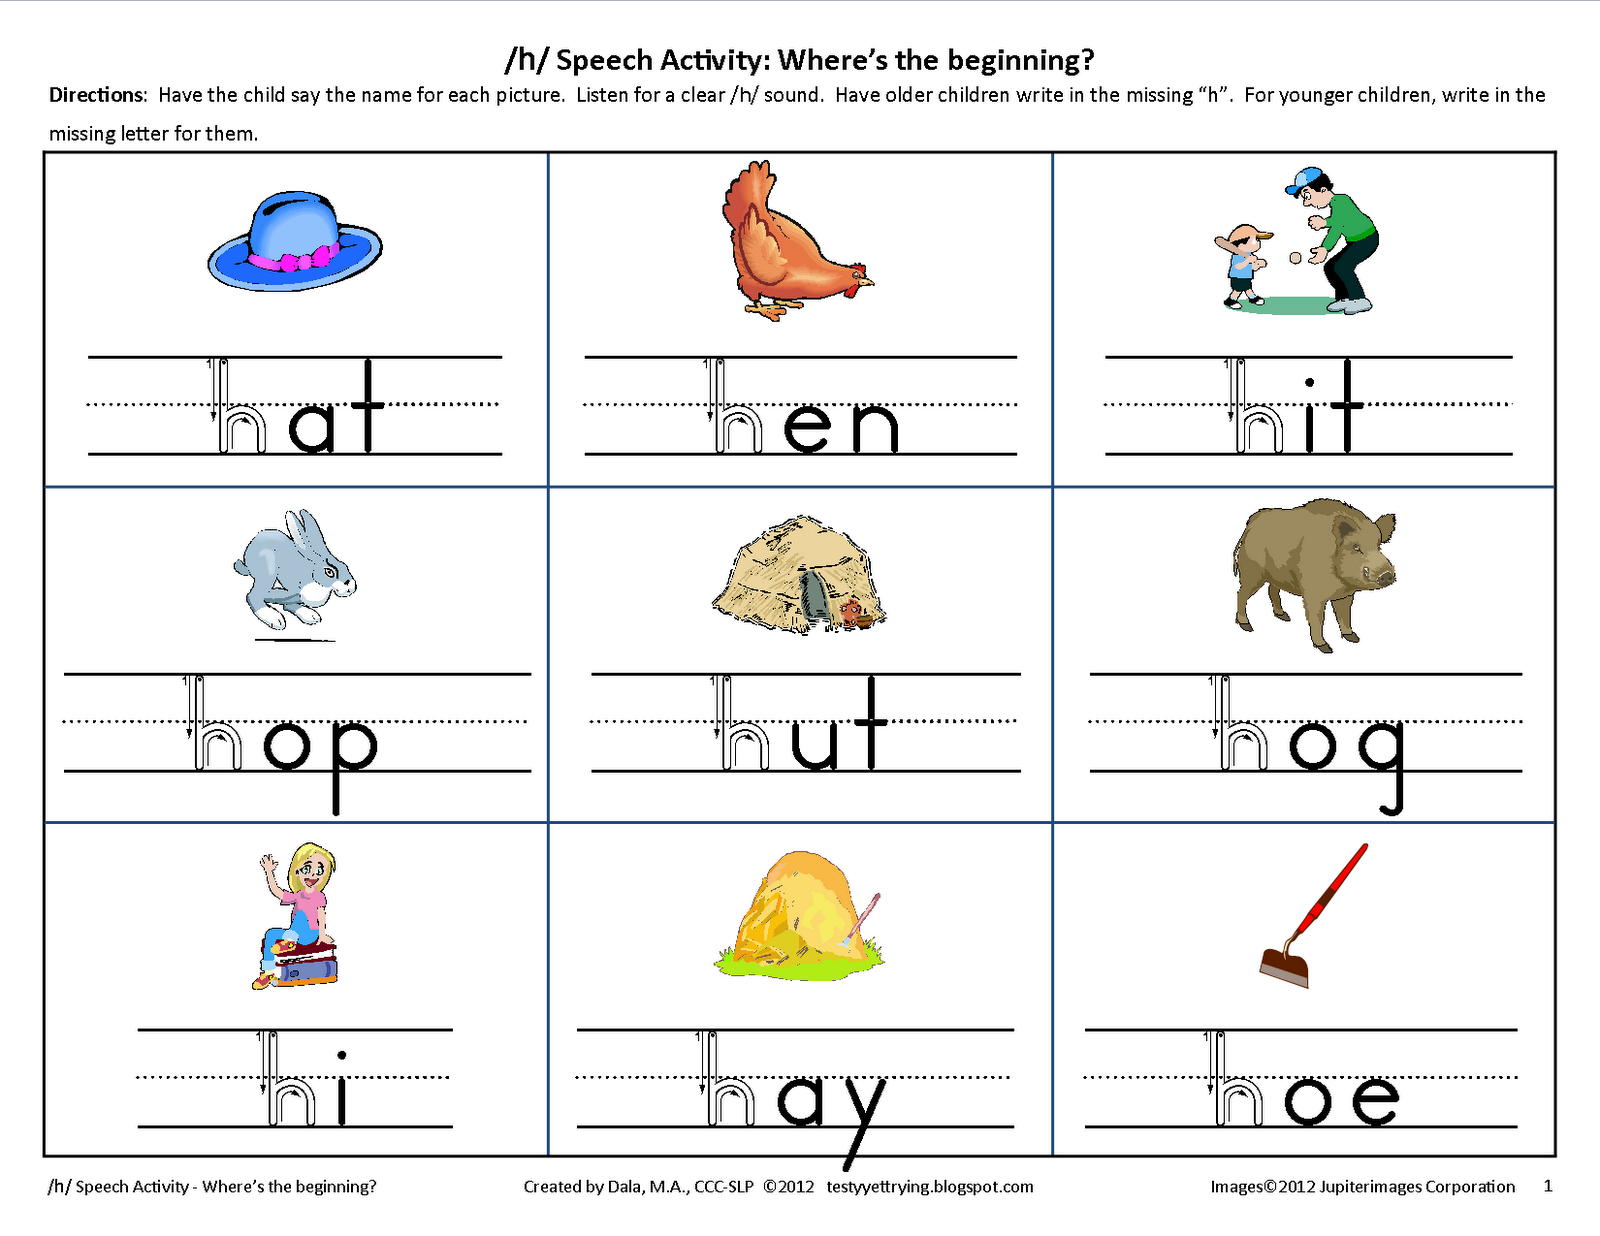 Weirdmailus  Splendid Testy Yet Trying Initial H Speech Worksheet With Gorgeous Make Classroom Teachers Happy Reinforce Phonics And Handwriting And Practice Speech All At The Same Time With Enchanting Preschool Color Recognition Worksheets Also Palm Sunday Worksheets In Addition Geometry Complementary And Supplementary Angles Worksheets And Reading A Clock Worksheet As Well As Lines Rays And Line Segments Worksheets Additionally Financial Analysis Worksheet From Testyyettryingblogspotcom With Weirdmailus  Gorgeous Testy Yet Trying Initial H Speech Worksheet With Enchanting Make Classroom Teachers Happy Reinforce Phonics And Handwriting And Practice Speech All At The Same Time And Splendid Preschool Color Recognition Worksheets Also Palm Sunday Worksheets In Addition Geometry Complementary And Supplementary Angles Worksheets From Testyyettryingblogspotcom